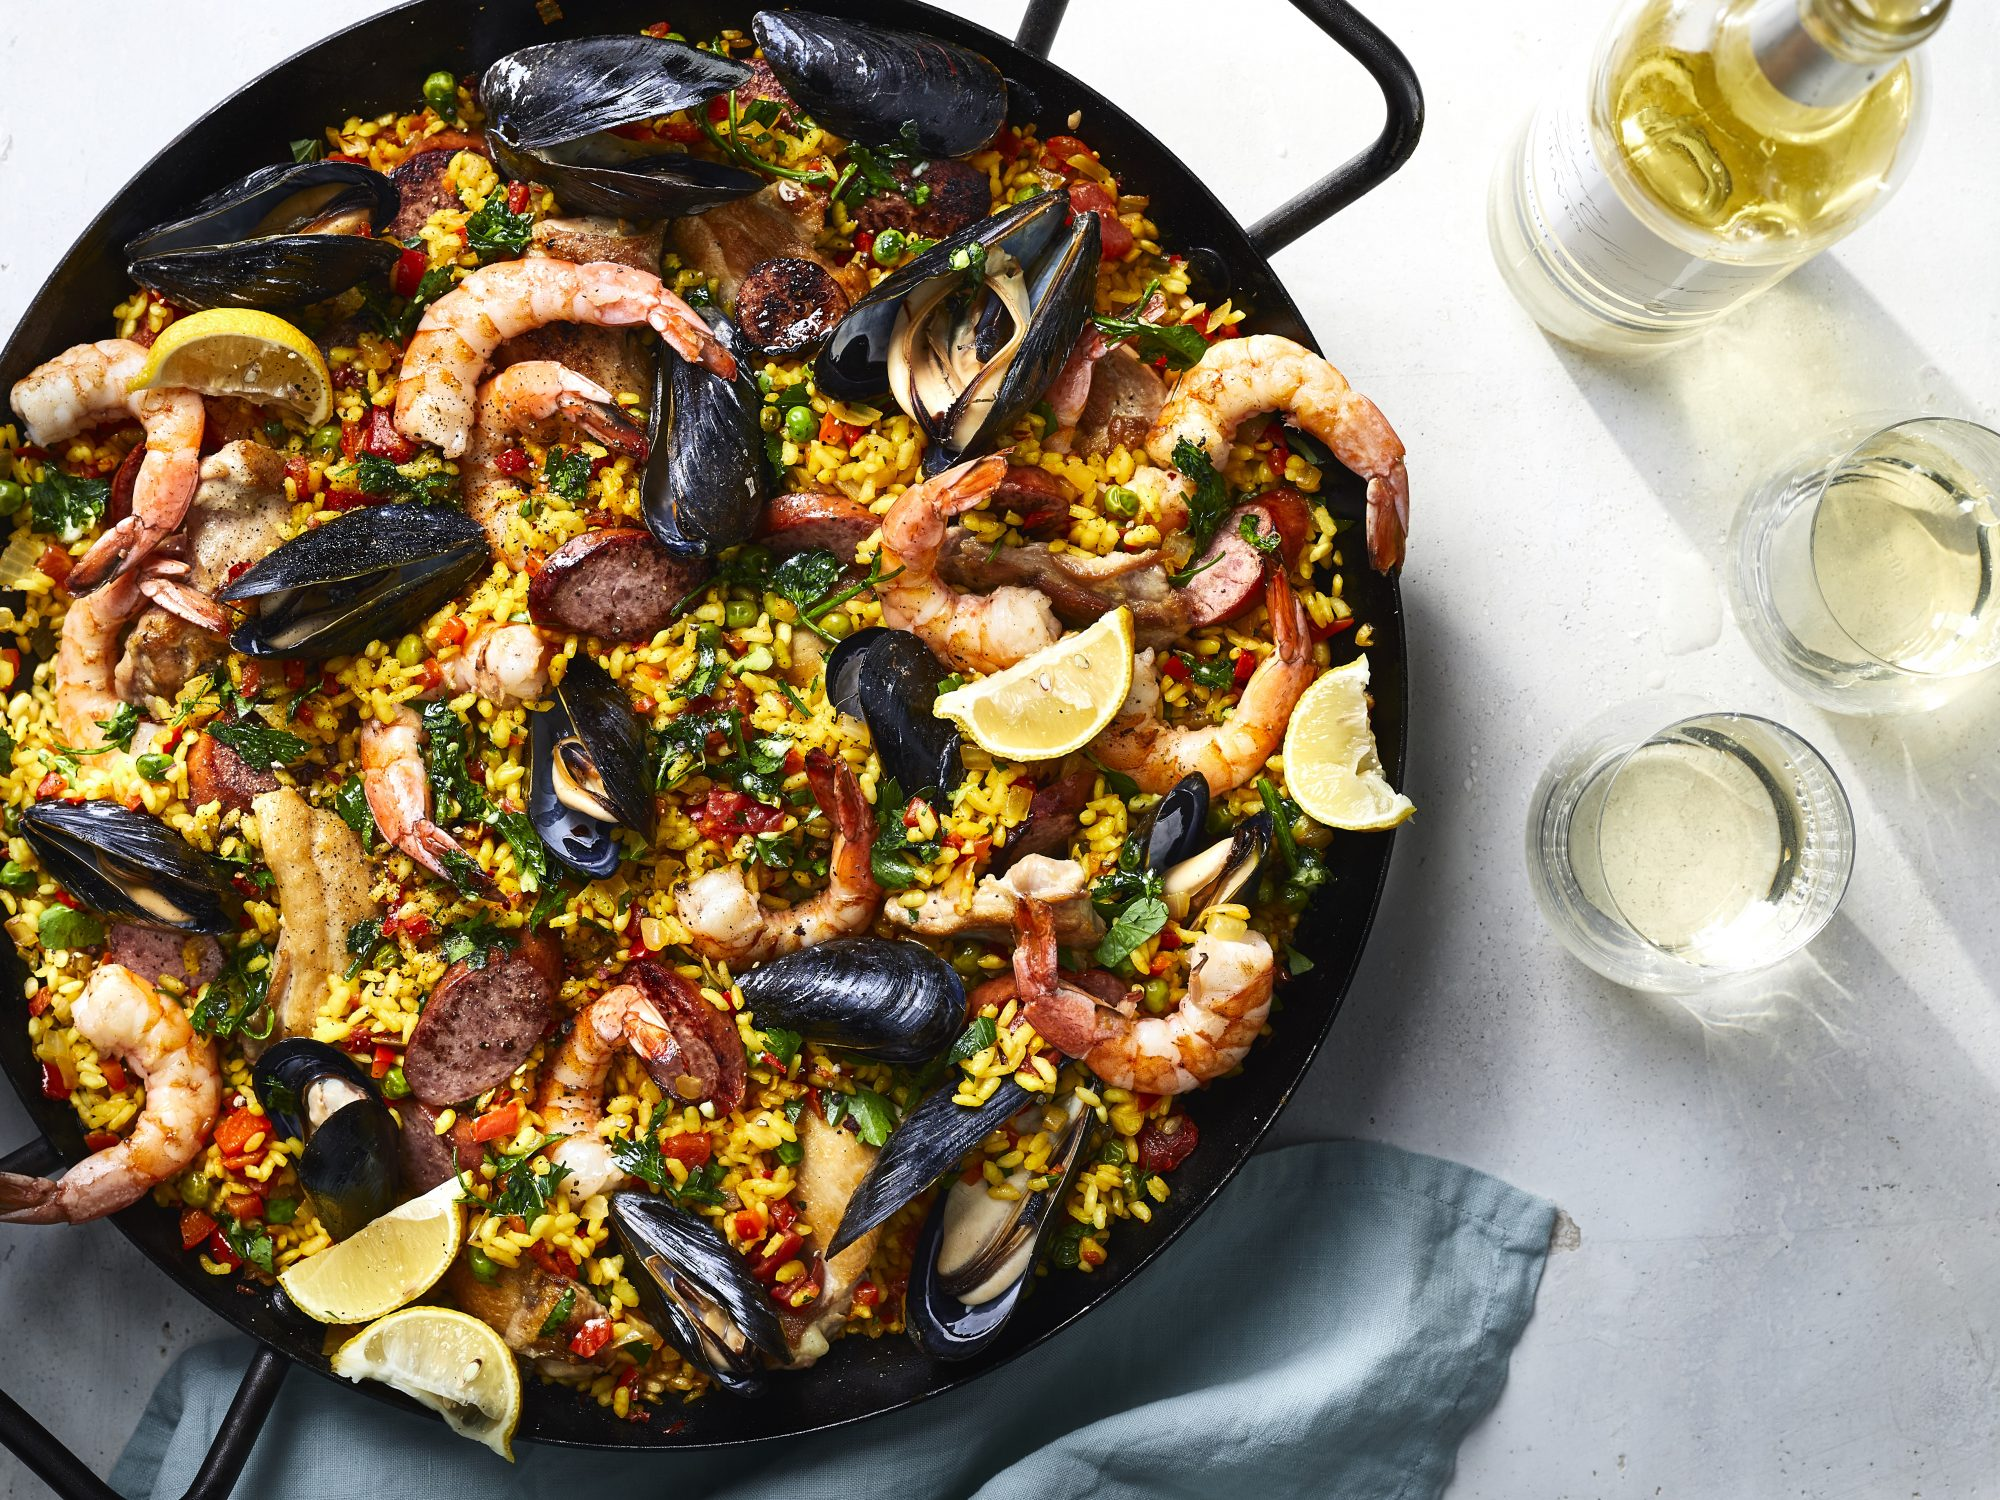 What Is a Paella Pan? (And Do I Really Need One?)